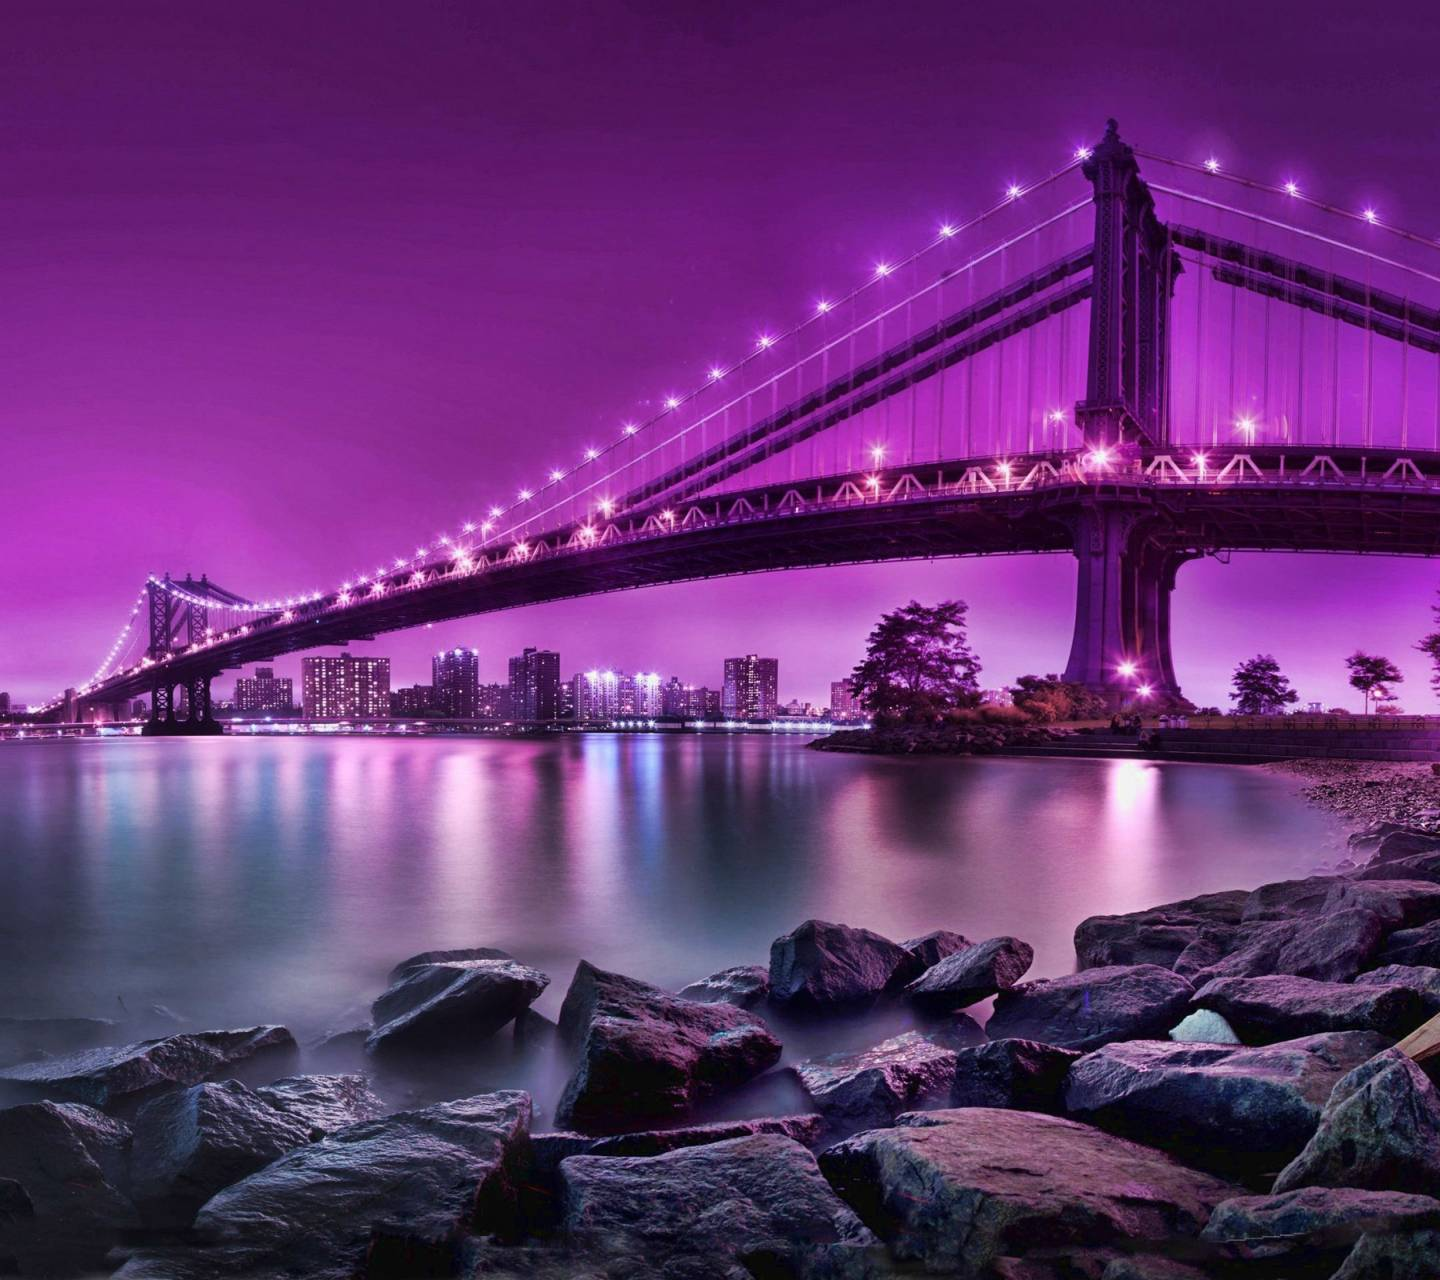 Pink Bridge Hd Wallpaper by __LOV3ABL3__ - 22